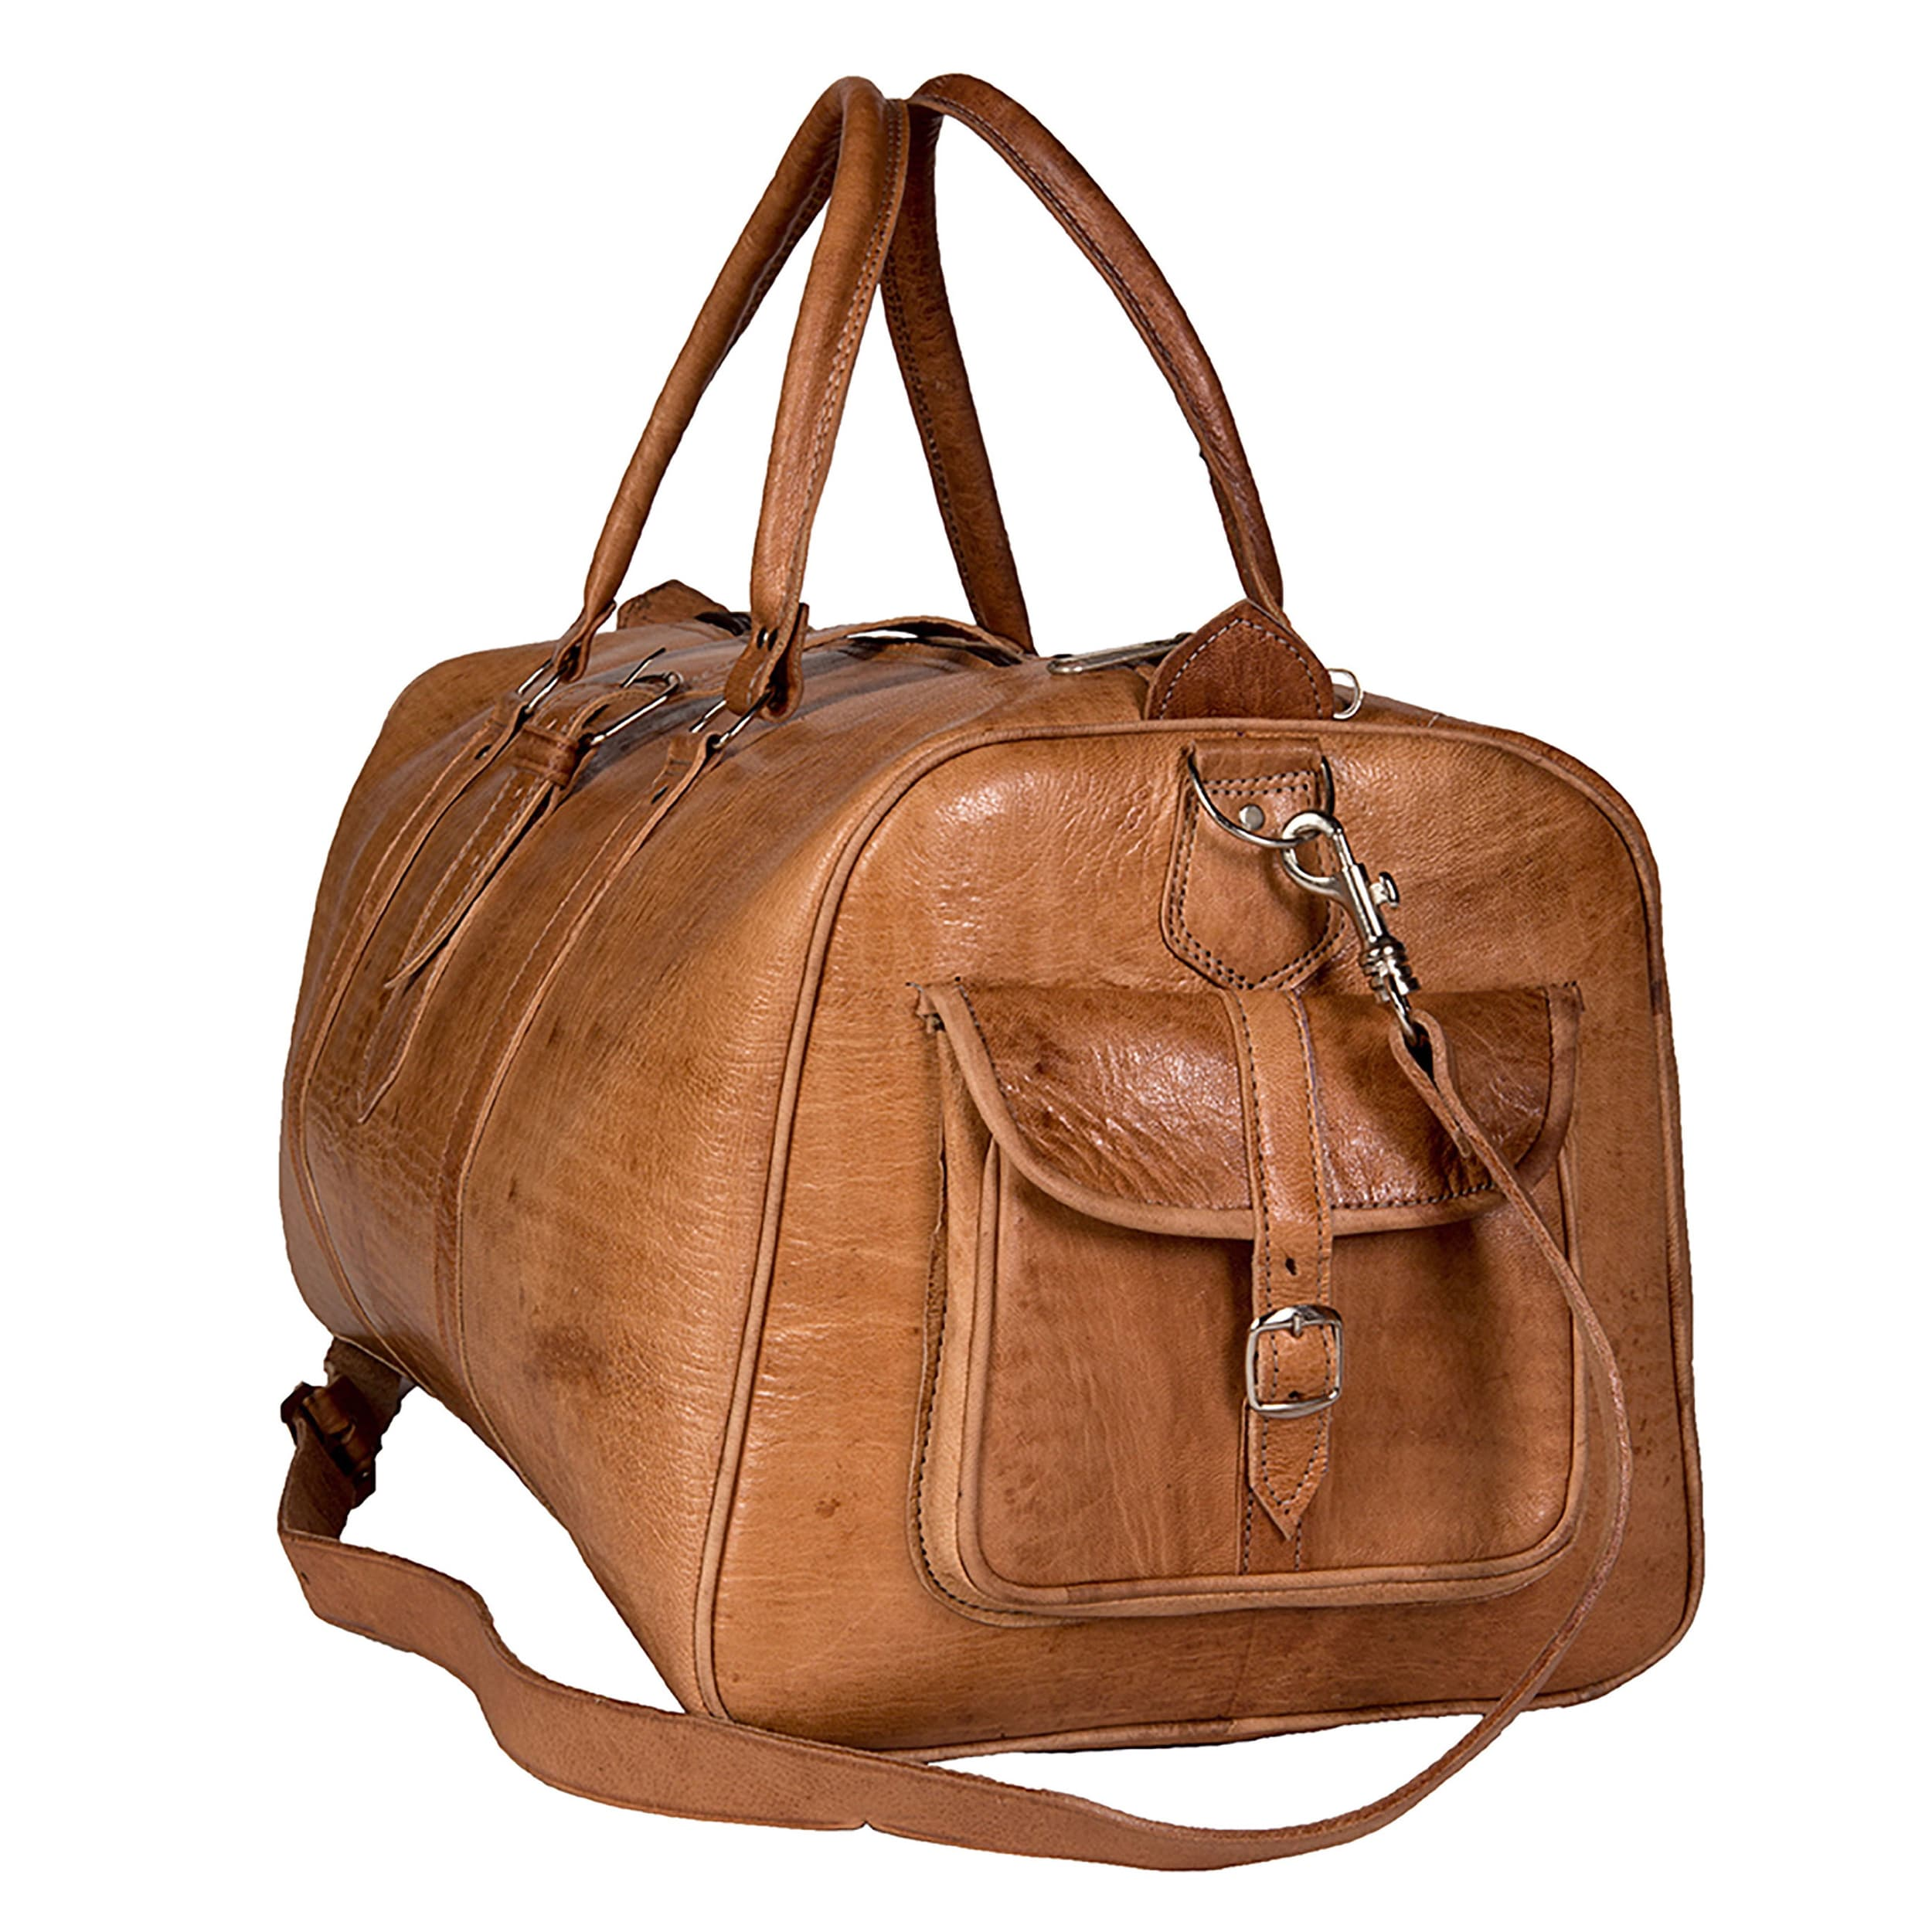 07cd915f5e Shop Handmade Large Tan Moroccan Leather Duffel Bag (Morocco) - On Sale -  Free Shipping Today - Overstock - 9164674